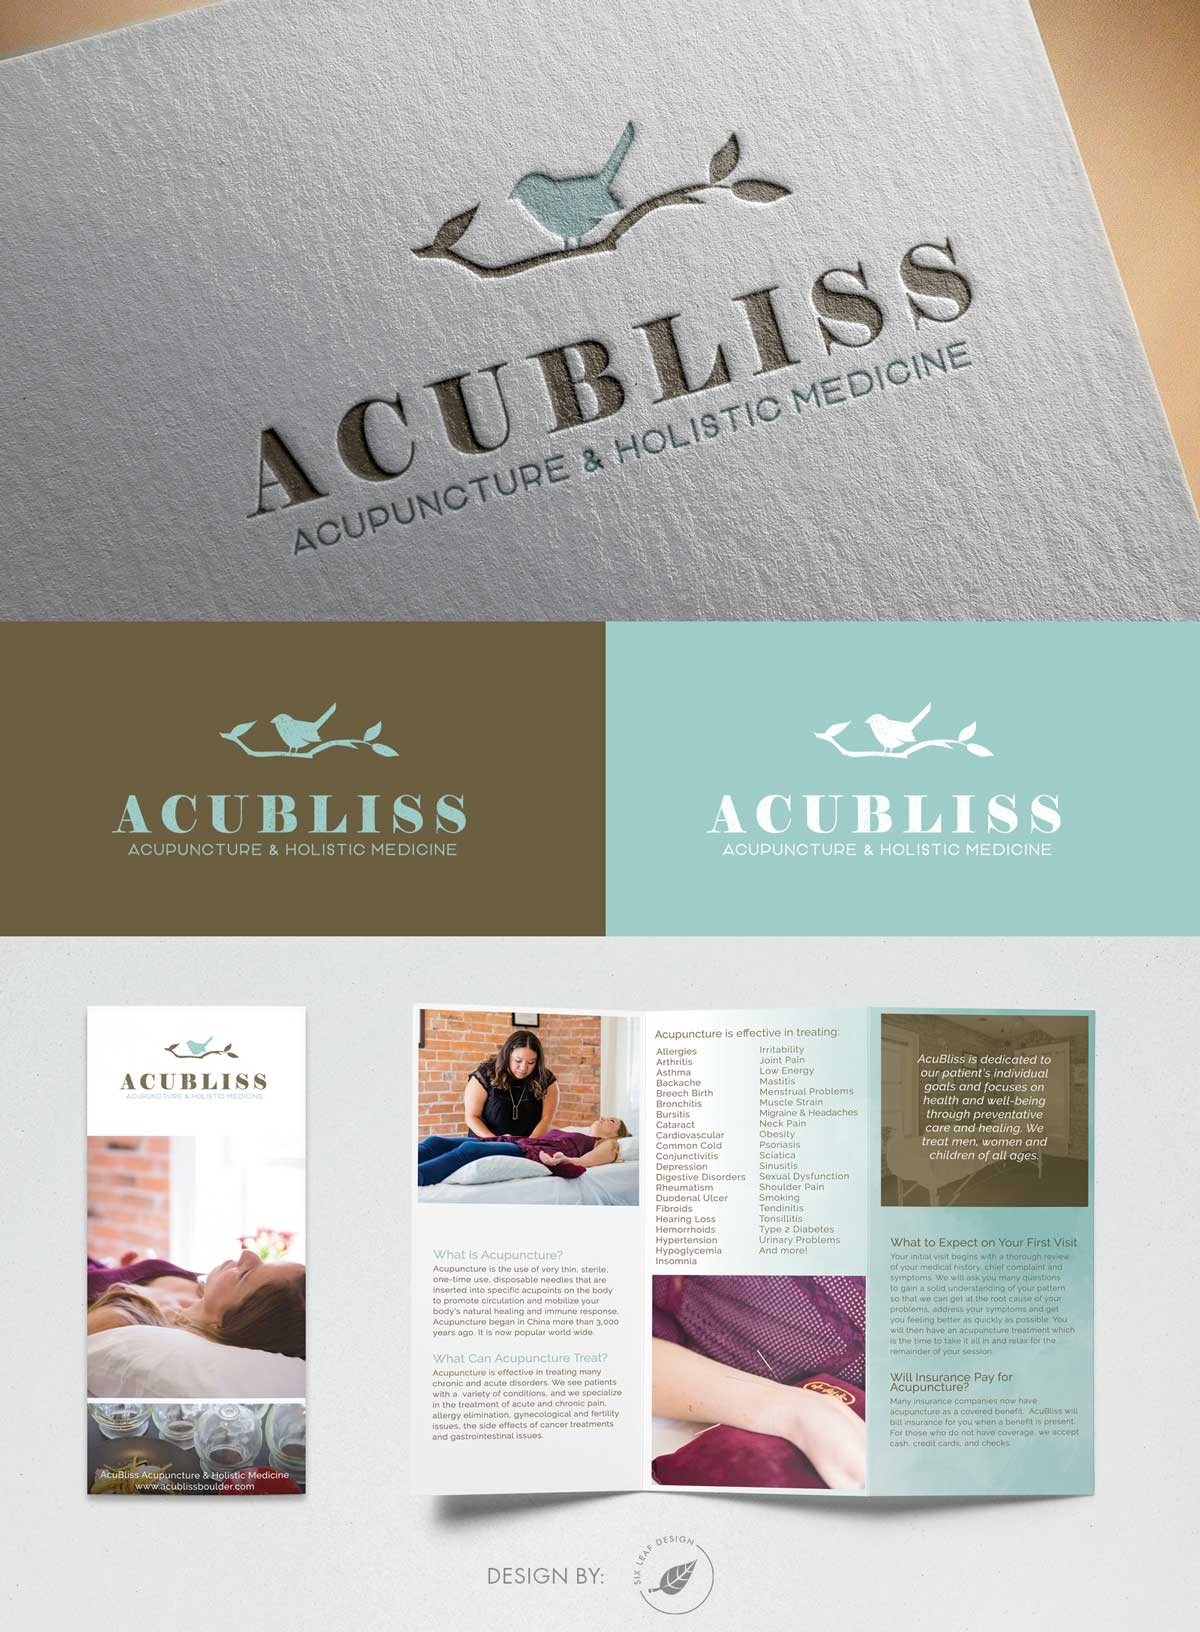 Logo Redesign & Trifold Brochure Design for Acupuncture Business Featuring Bird + Branch Design, Teal + Brown, and Watercolor Texture